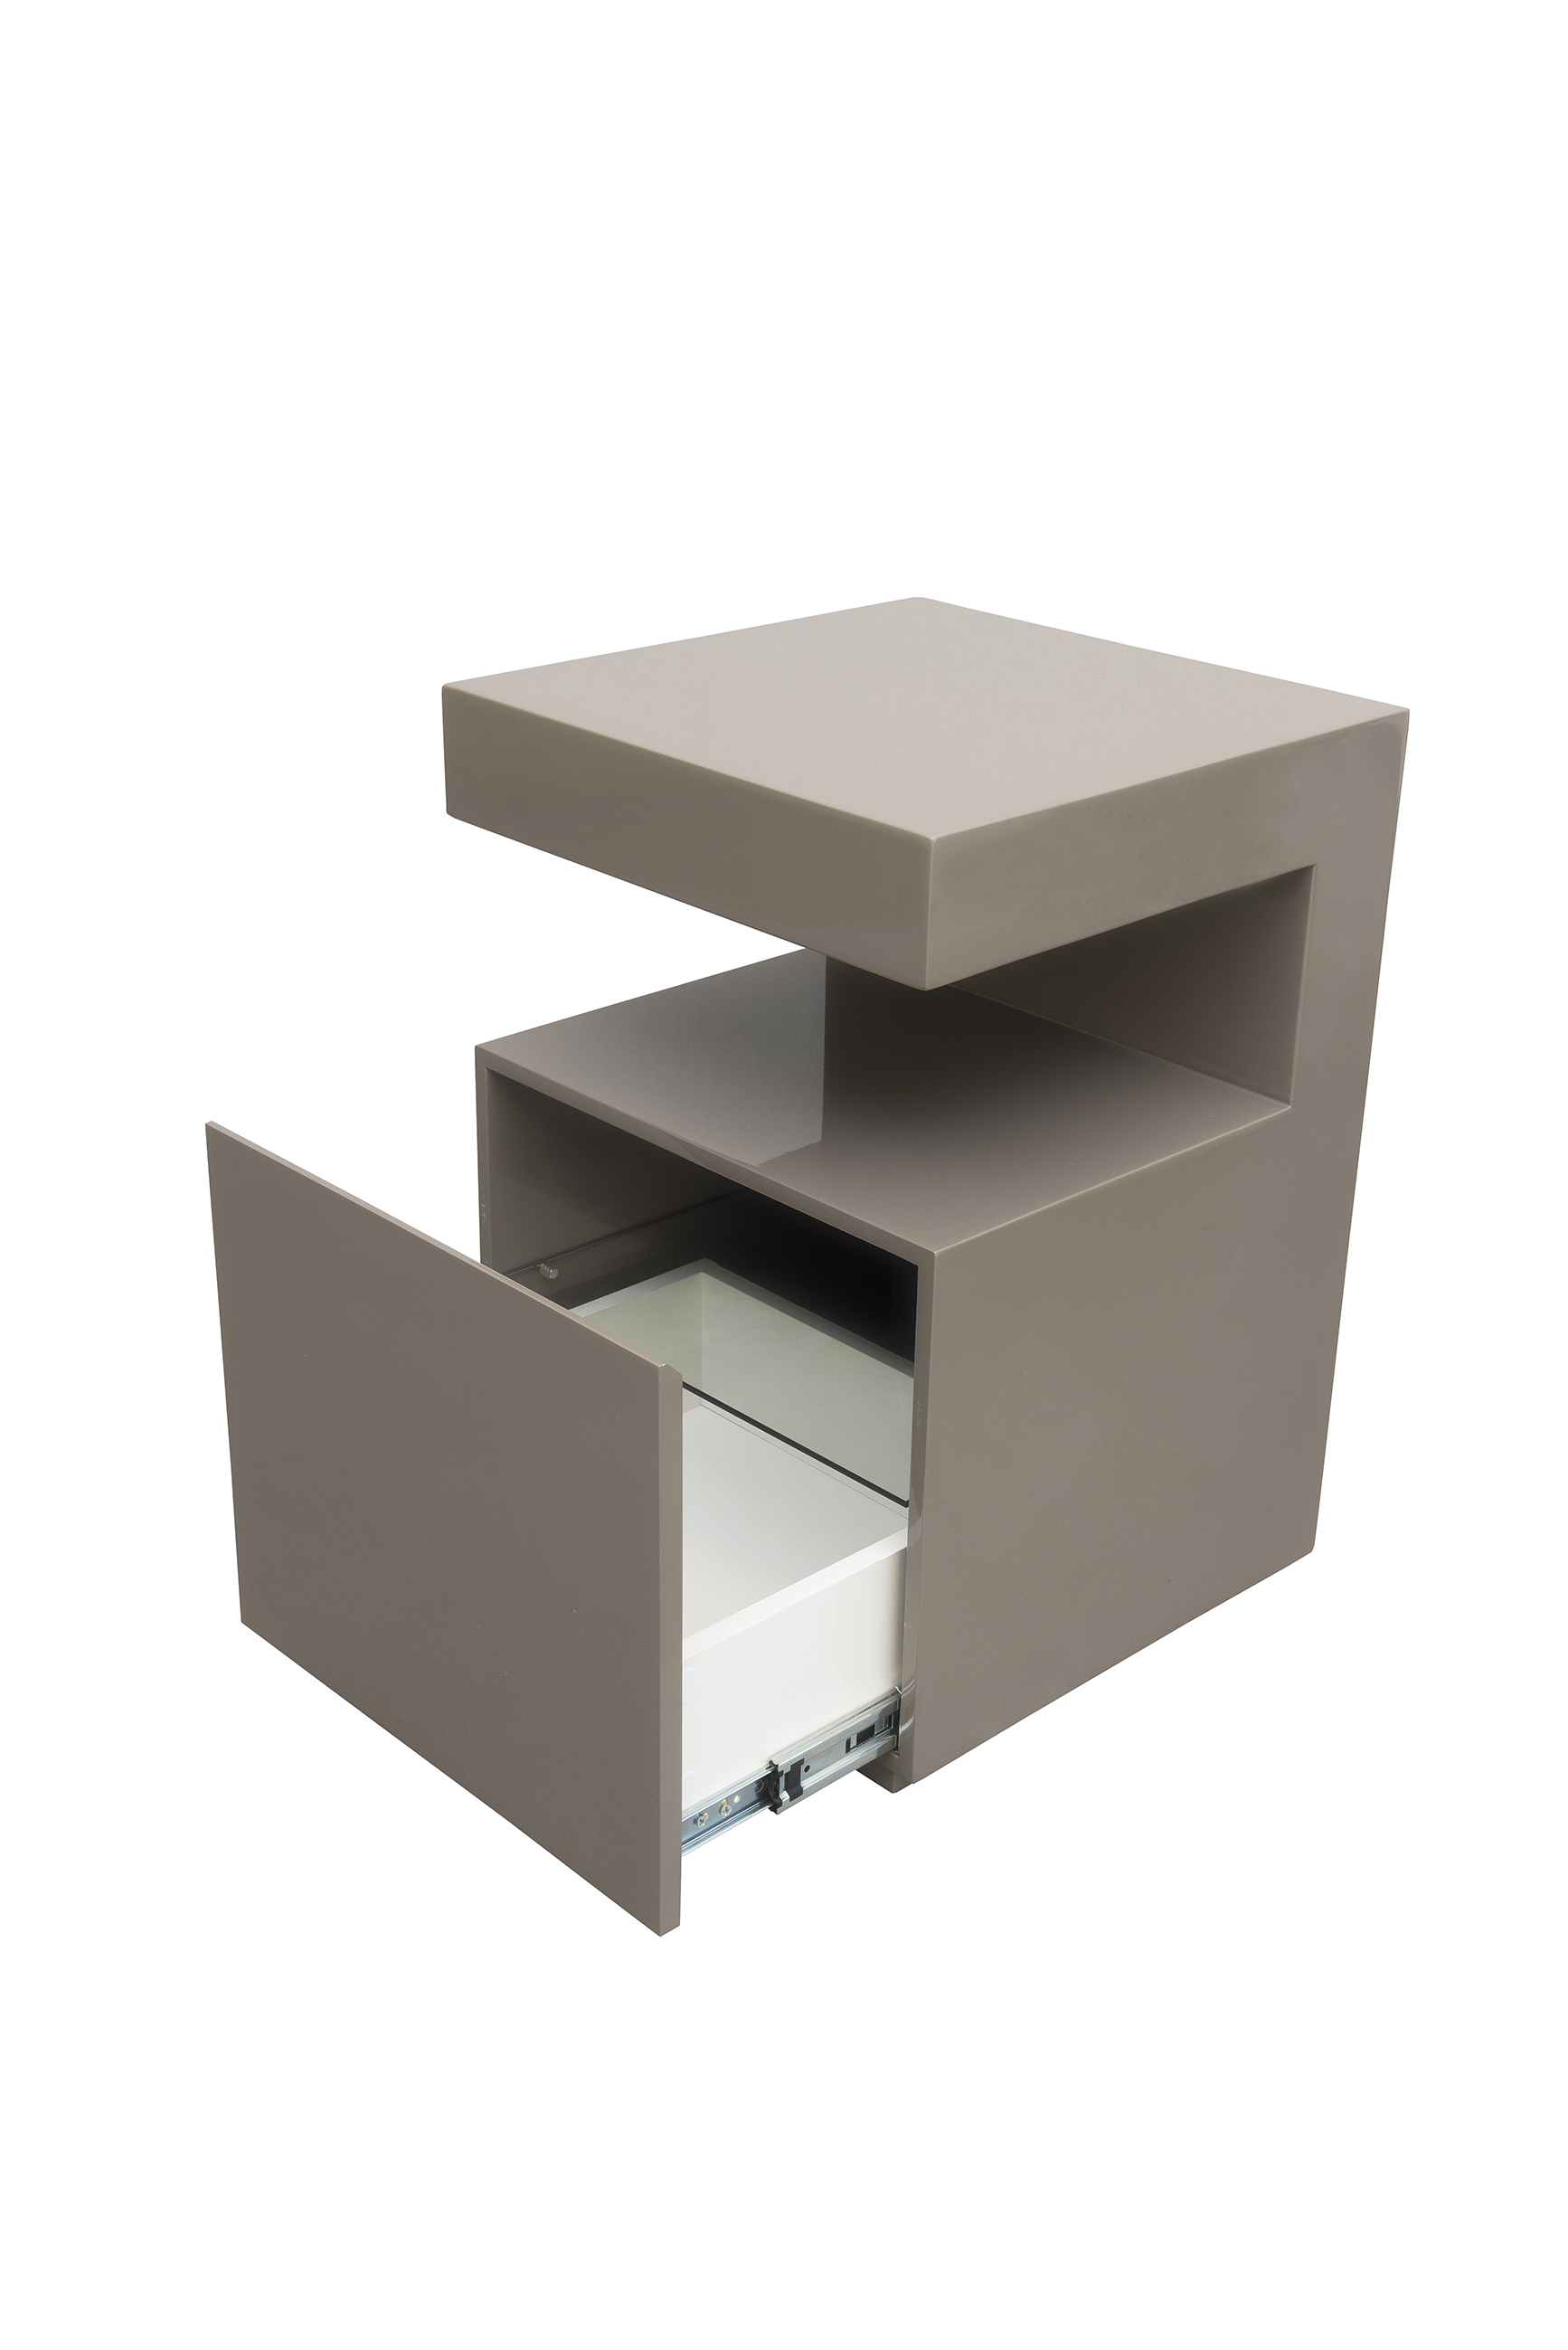 Meuble Intelligent Cube Shadow Eda Concept Collection De Meubles Design